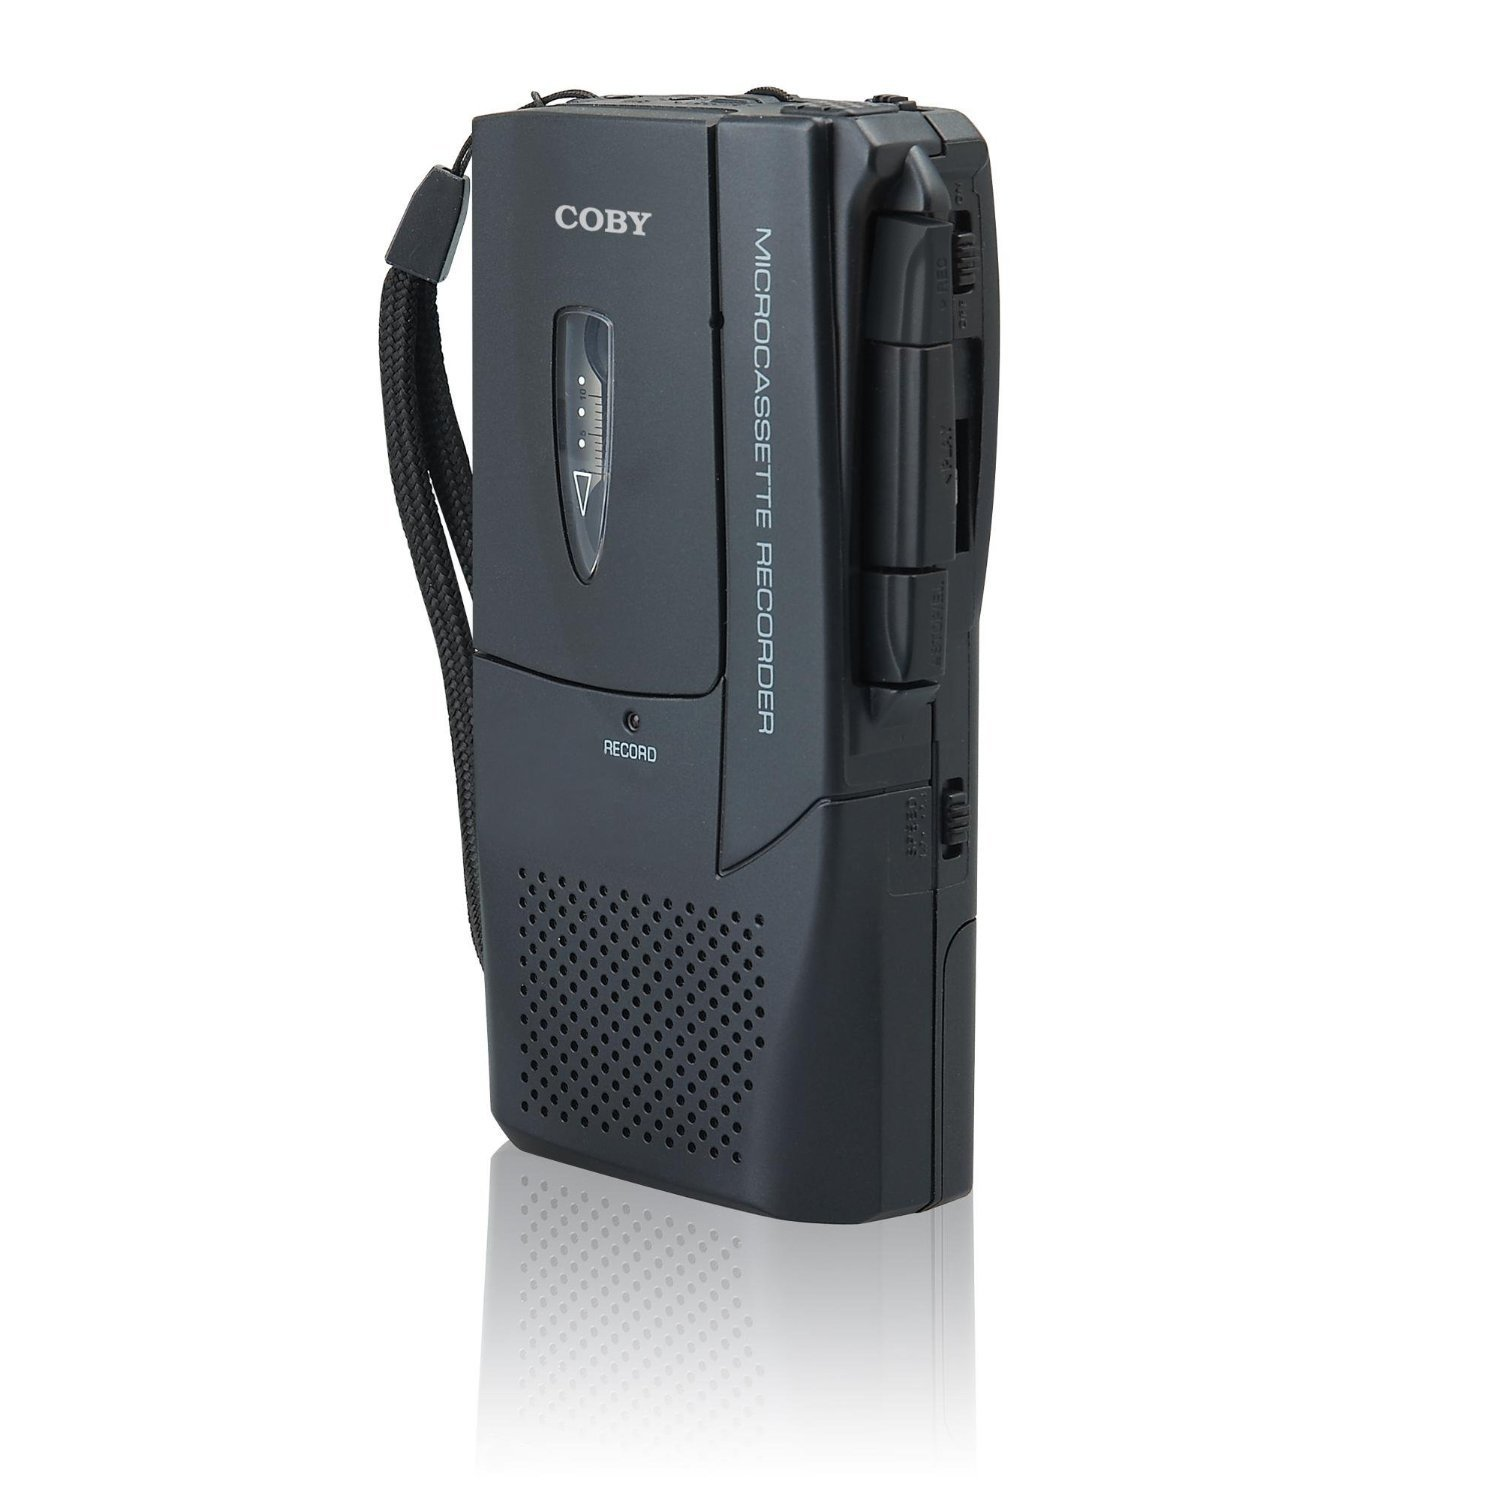 Coby CXR123 Voice Activated Micro_Casette Voice Recorder by Coby